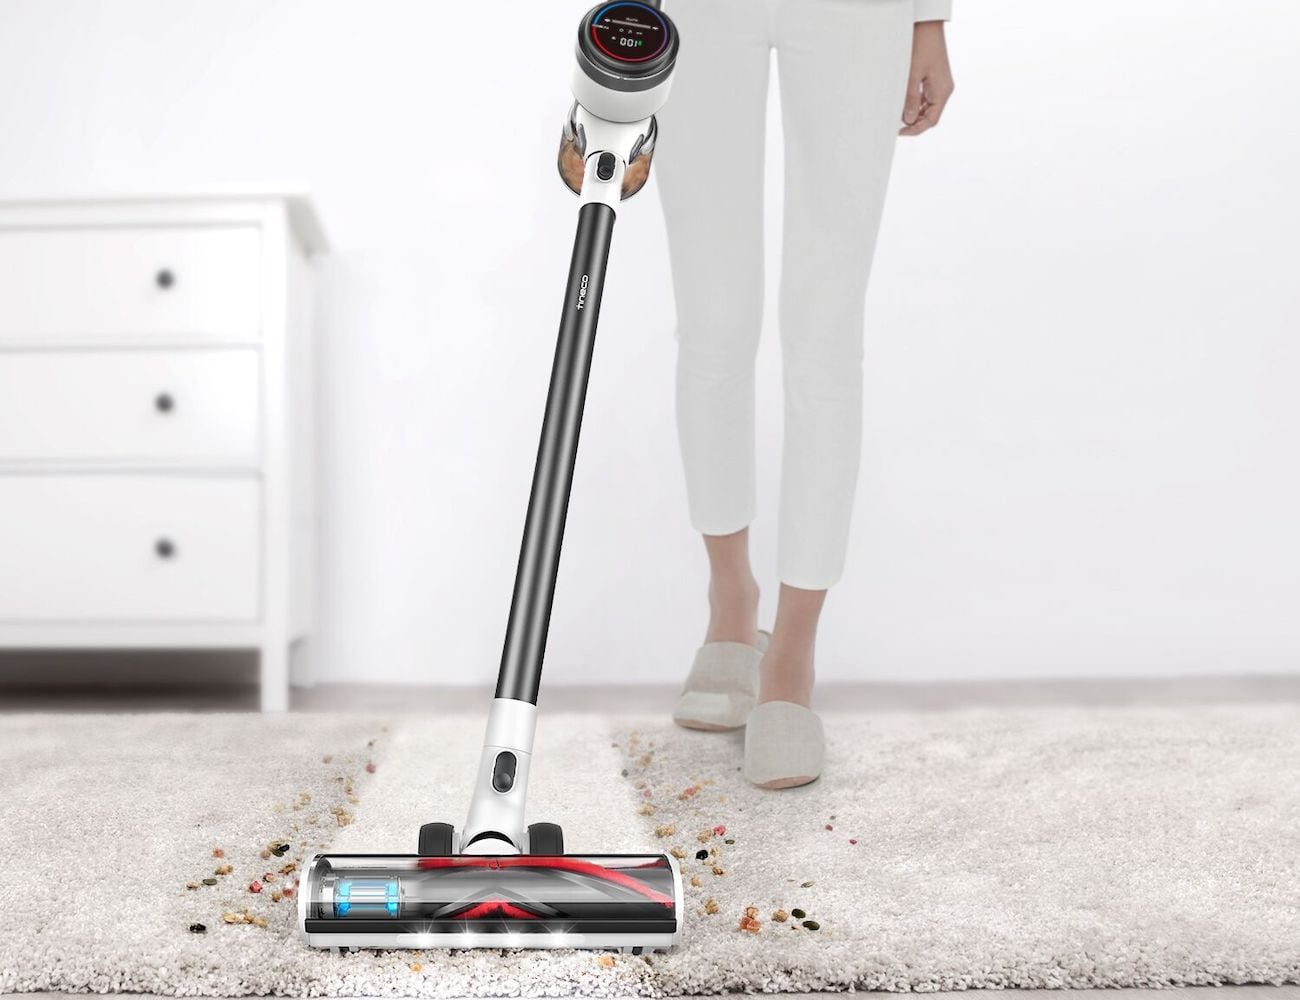 Tineco Pure One S12 Smart Vacuum Cleaner will find all the hidden dust in your home